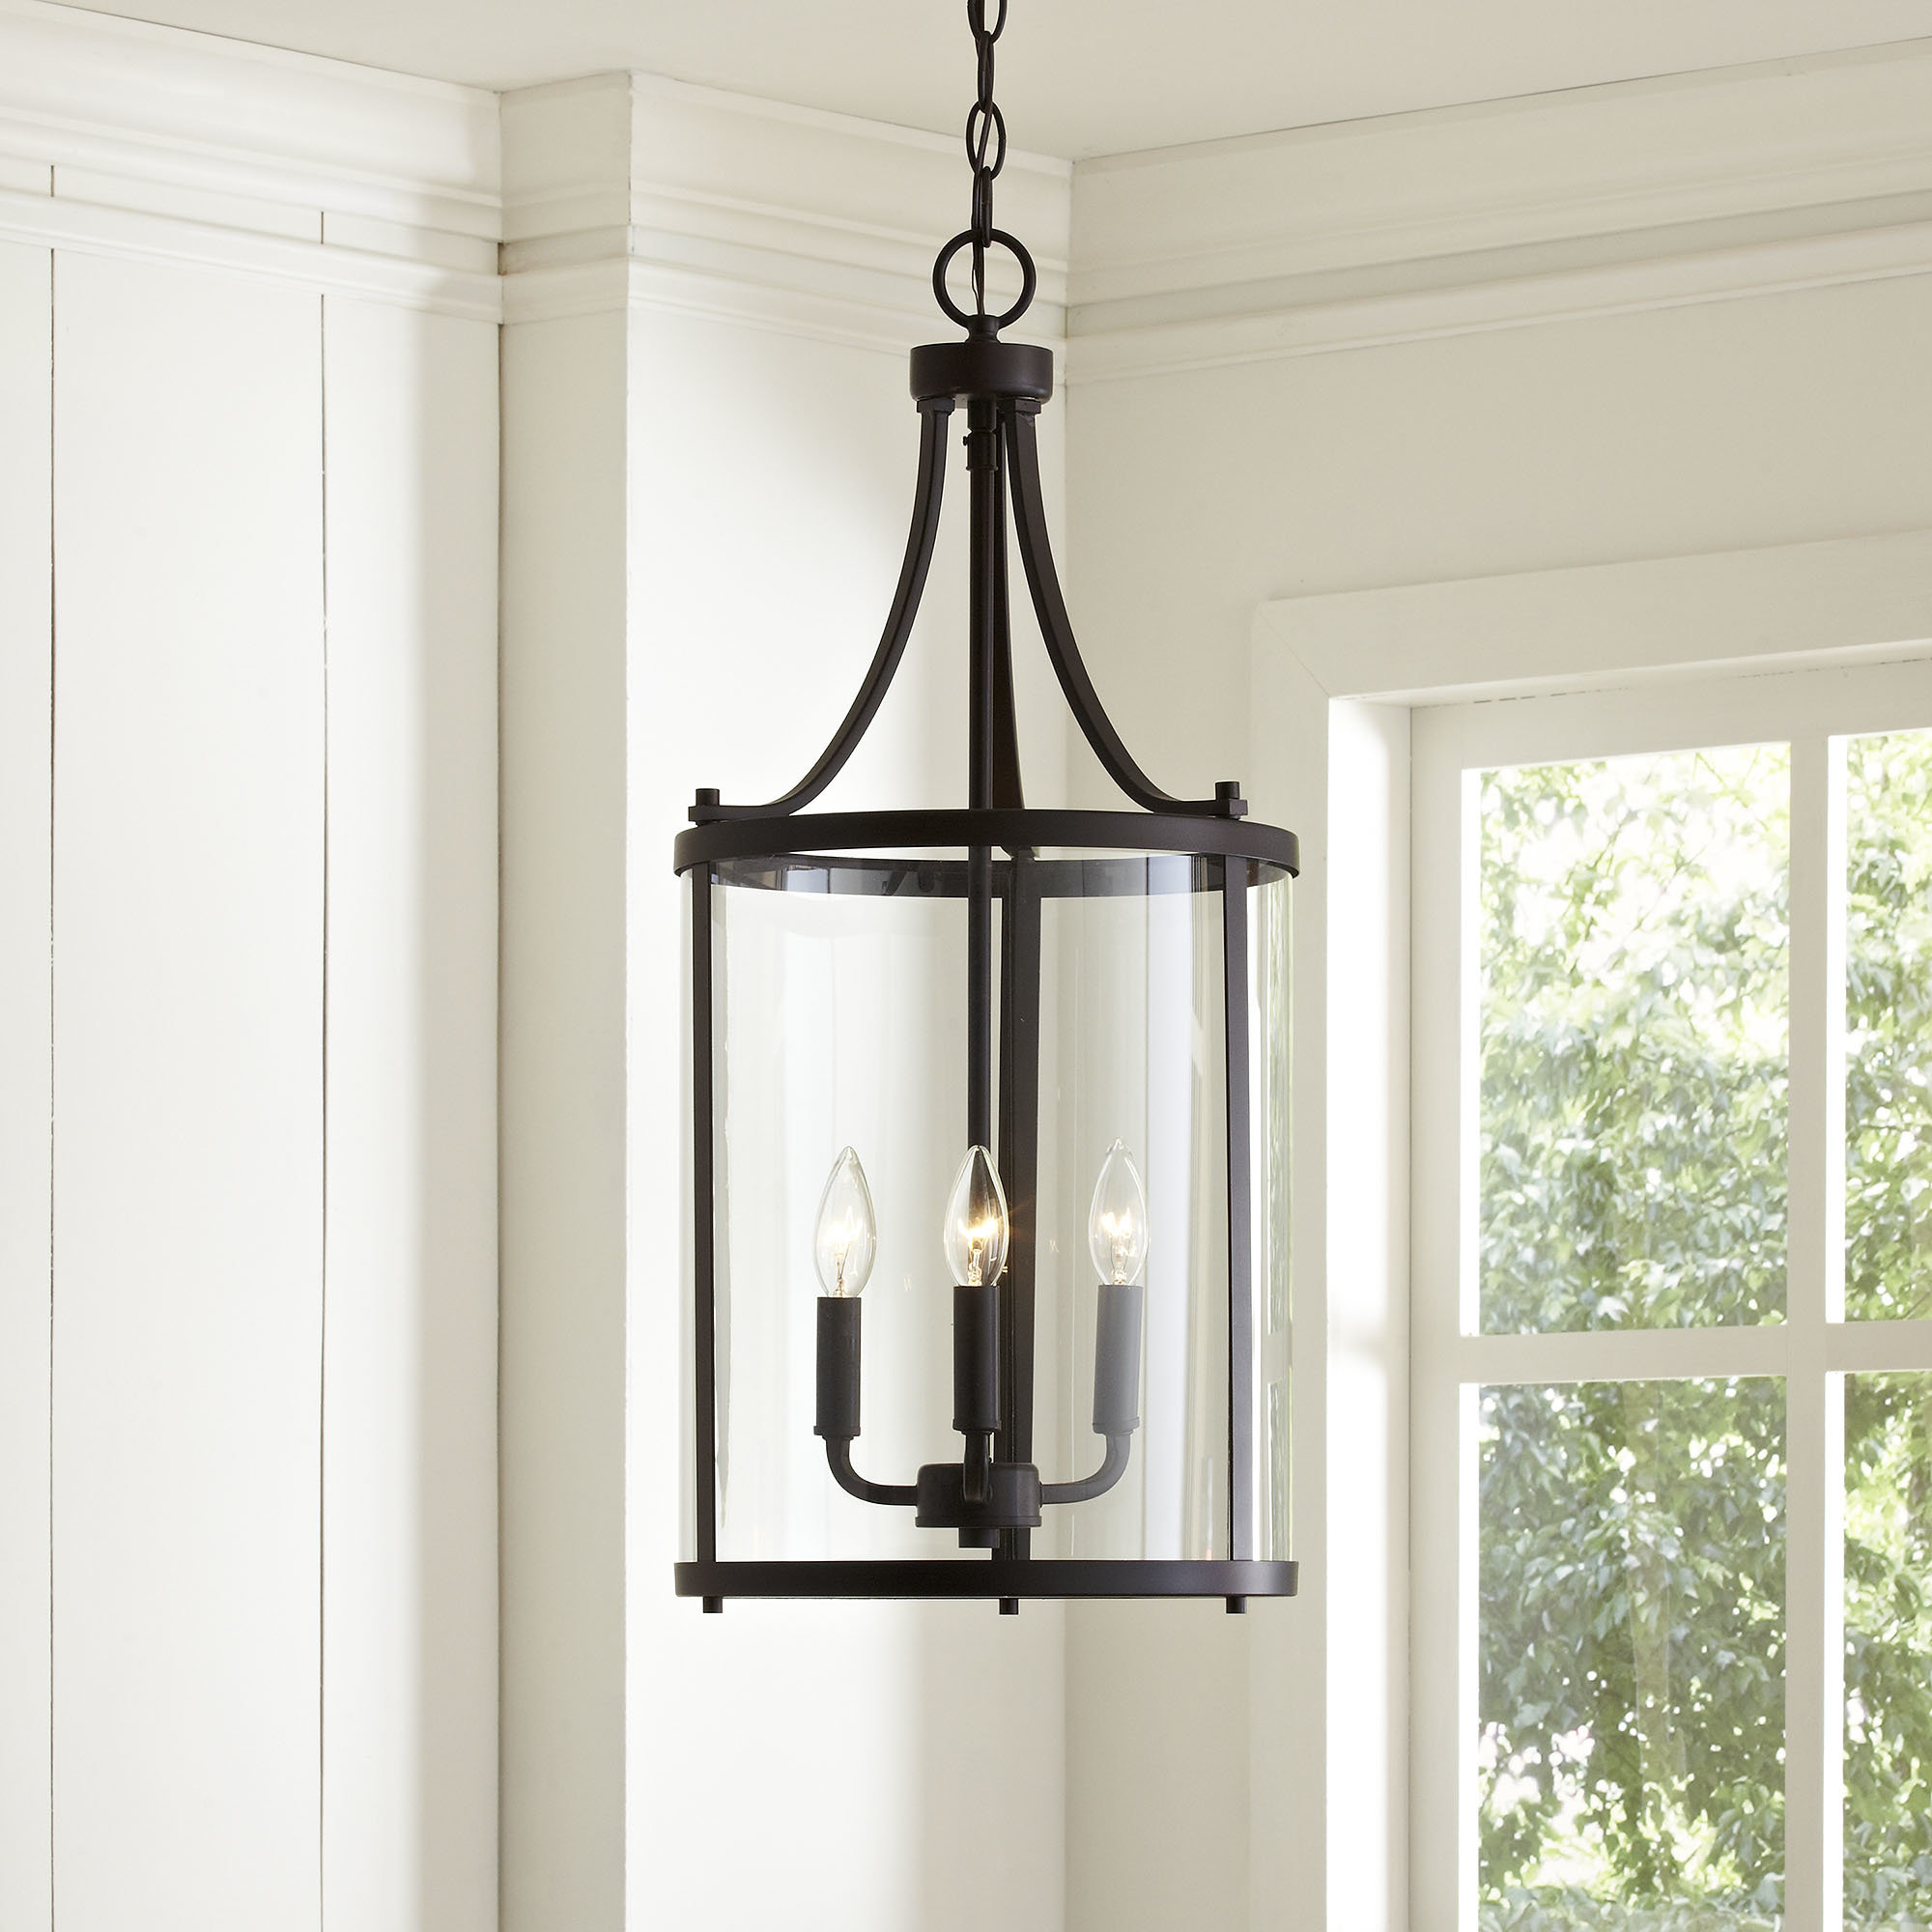 Fashionable Tessie 3 Light Lantern Cylinder Pendants In 3 Light Lantern Cylinder Pendant (View 6 of 20)